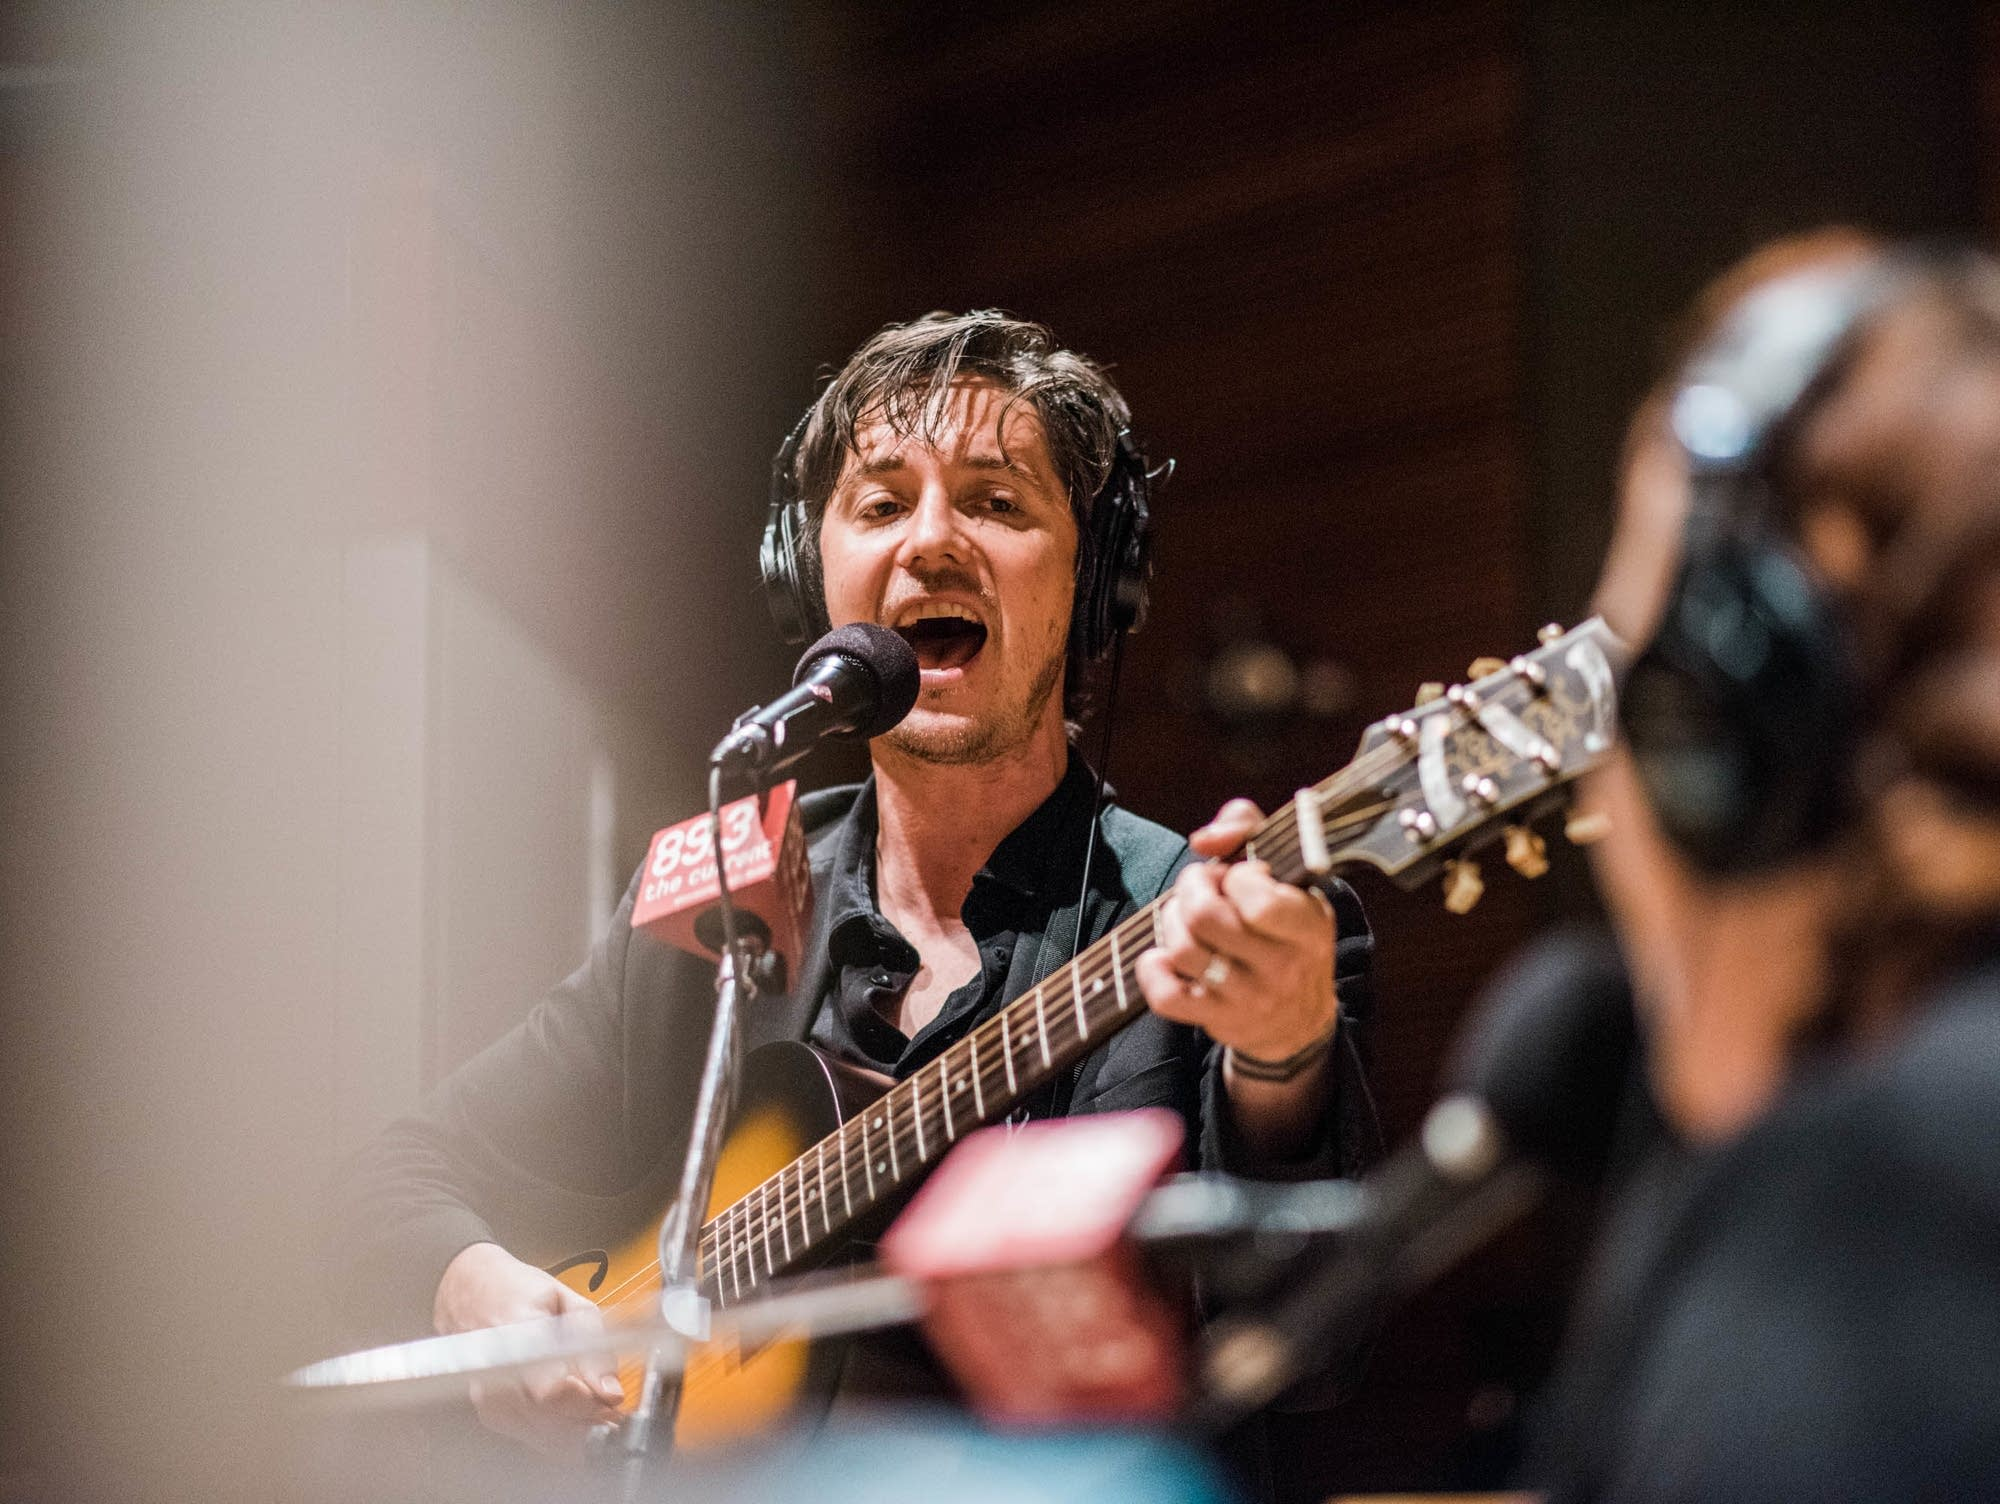 Shovels & Rope perform in The Current studio.